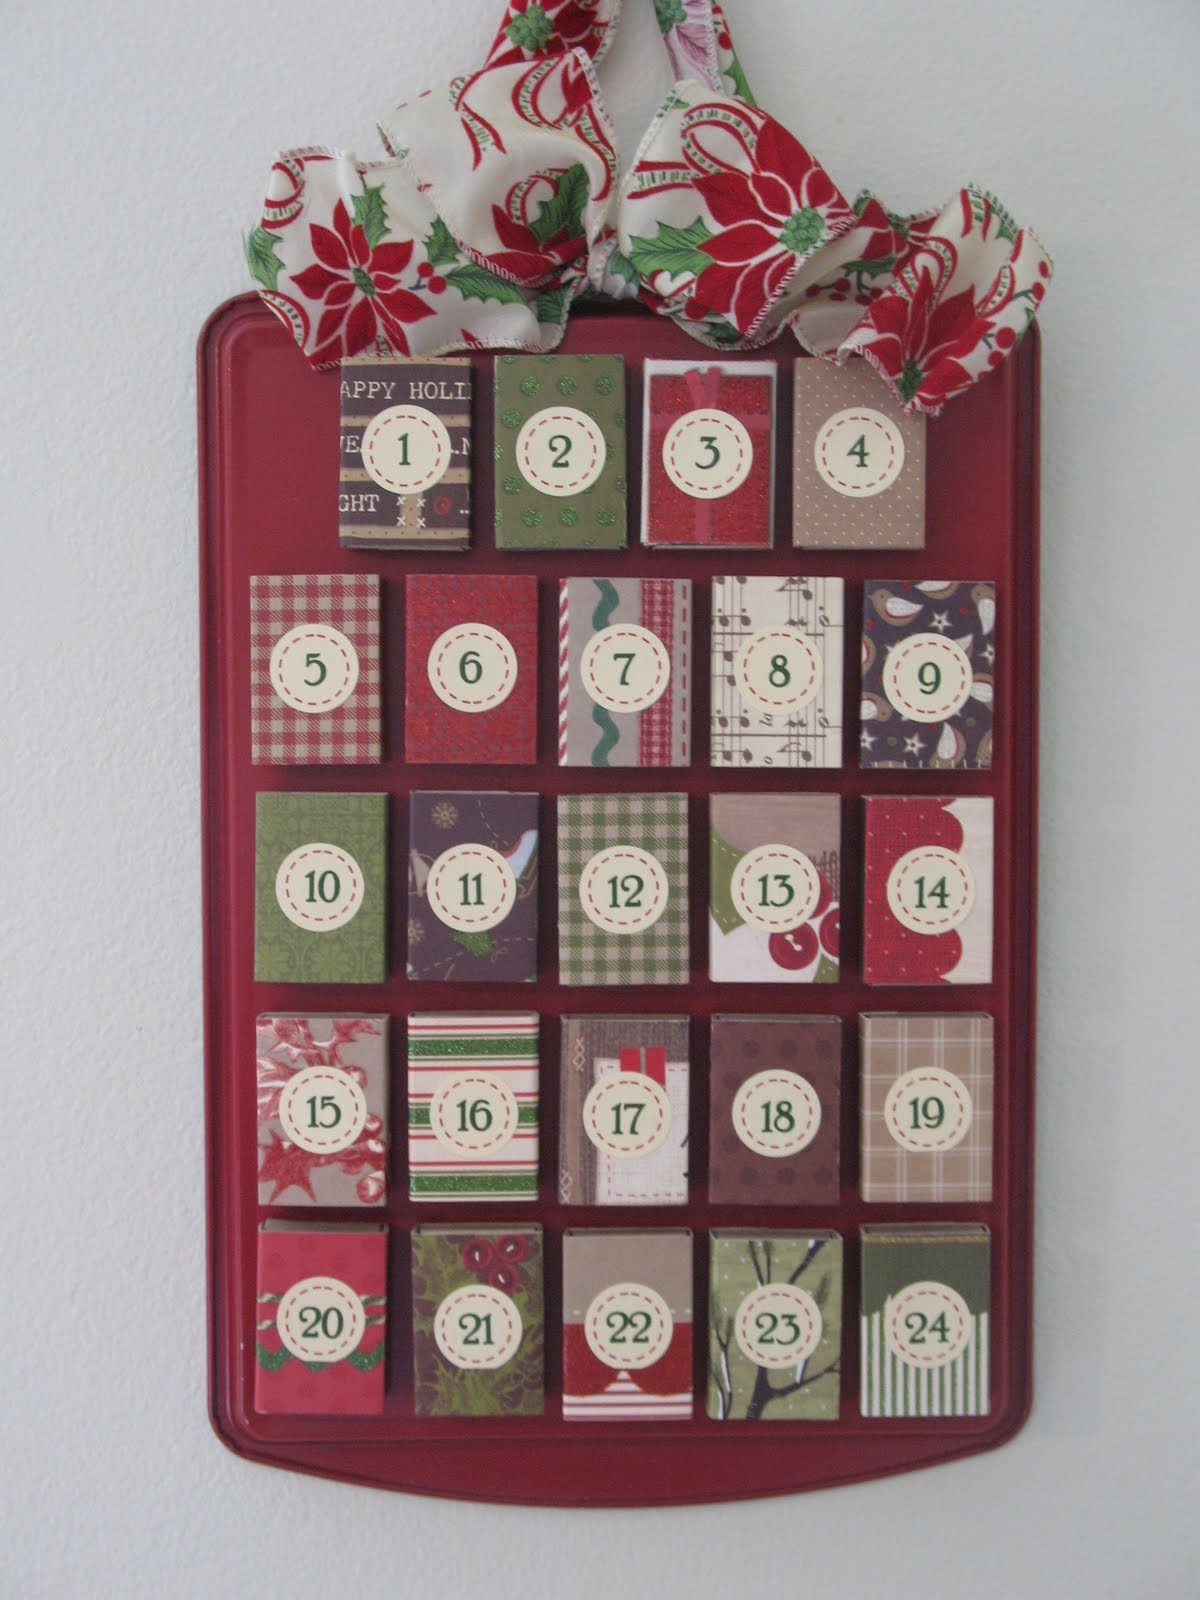 Vintage Santa Wooden Advent Calendar with Doors from Primitives by Kathy New Free Compare Prices · Up to 70% off · Special Discounts · Lowest PricesTypes: Electronics, Toys, Fashion, Home Improvement, Power tools, Sports equipment.